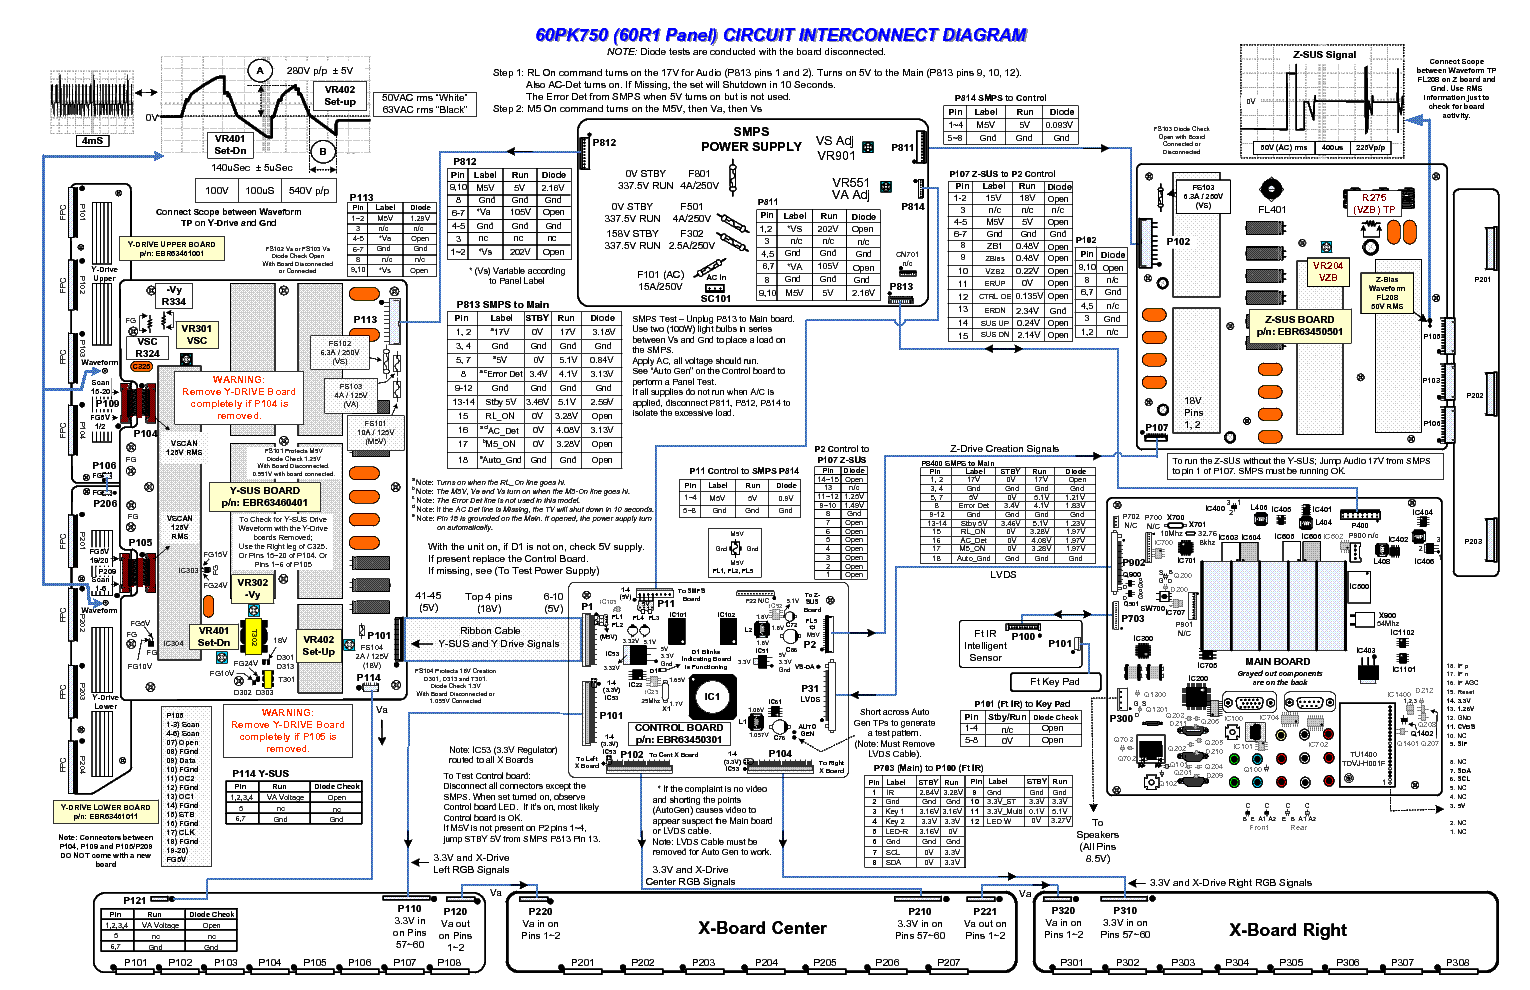 samsung led tv circuit diagram pdf wiring diagram datasource led tv circuit diagram samsung data diagram [ 1530 x 990 Pixel ]